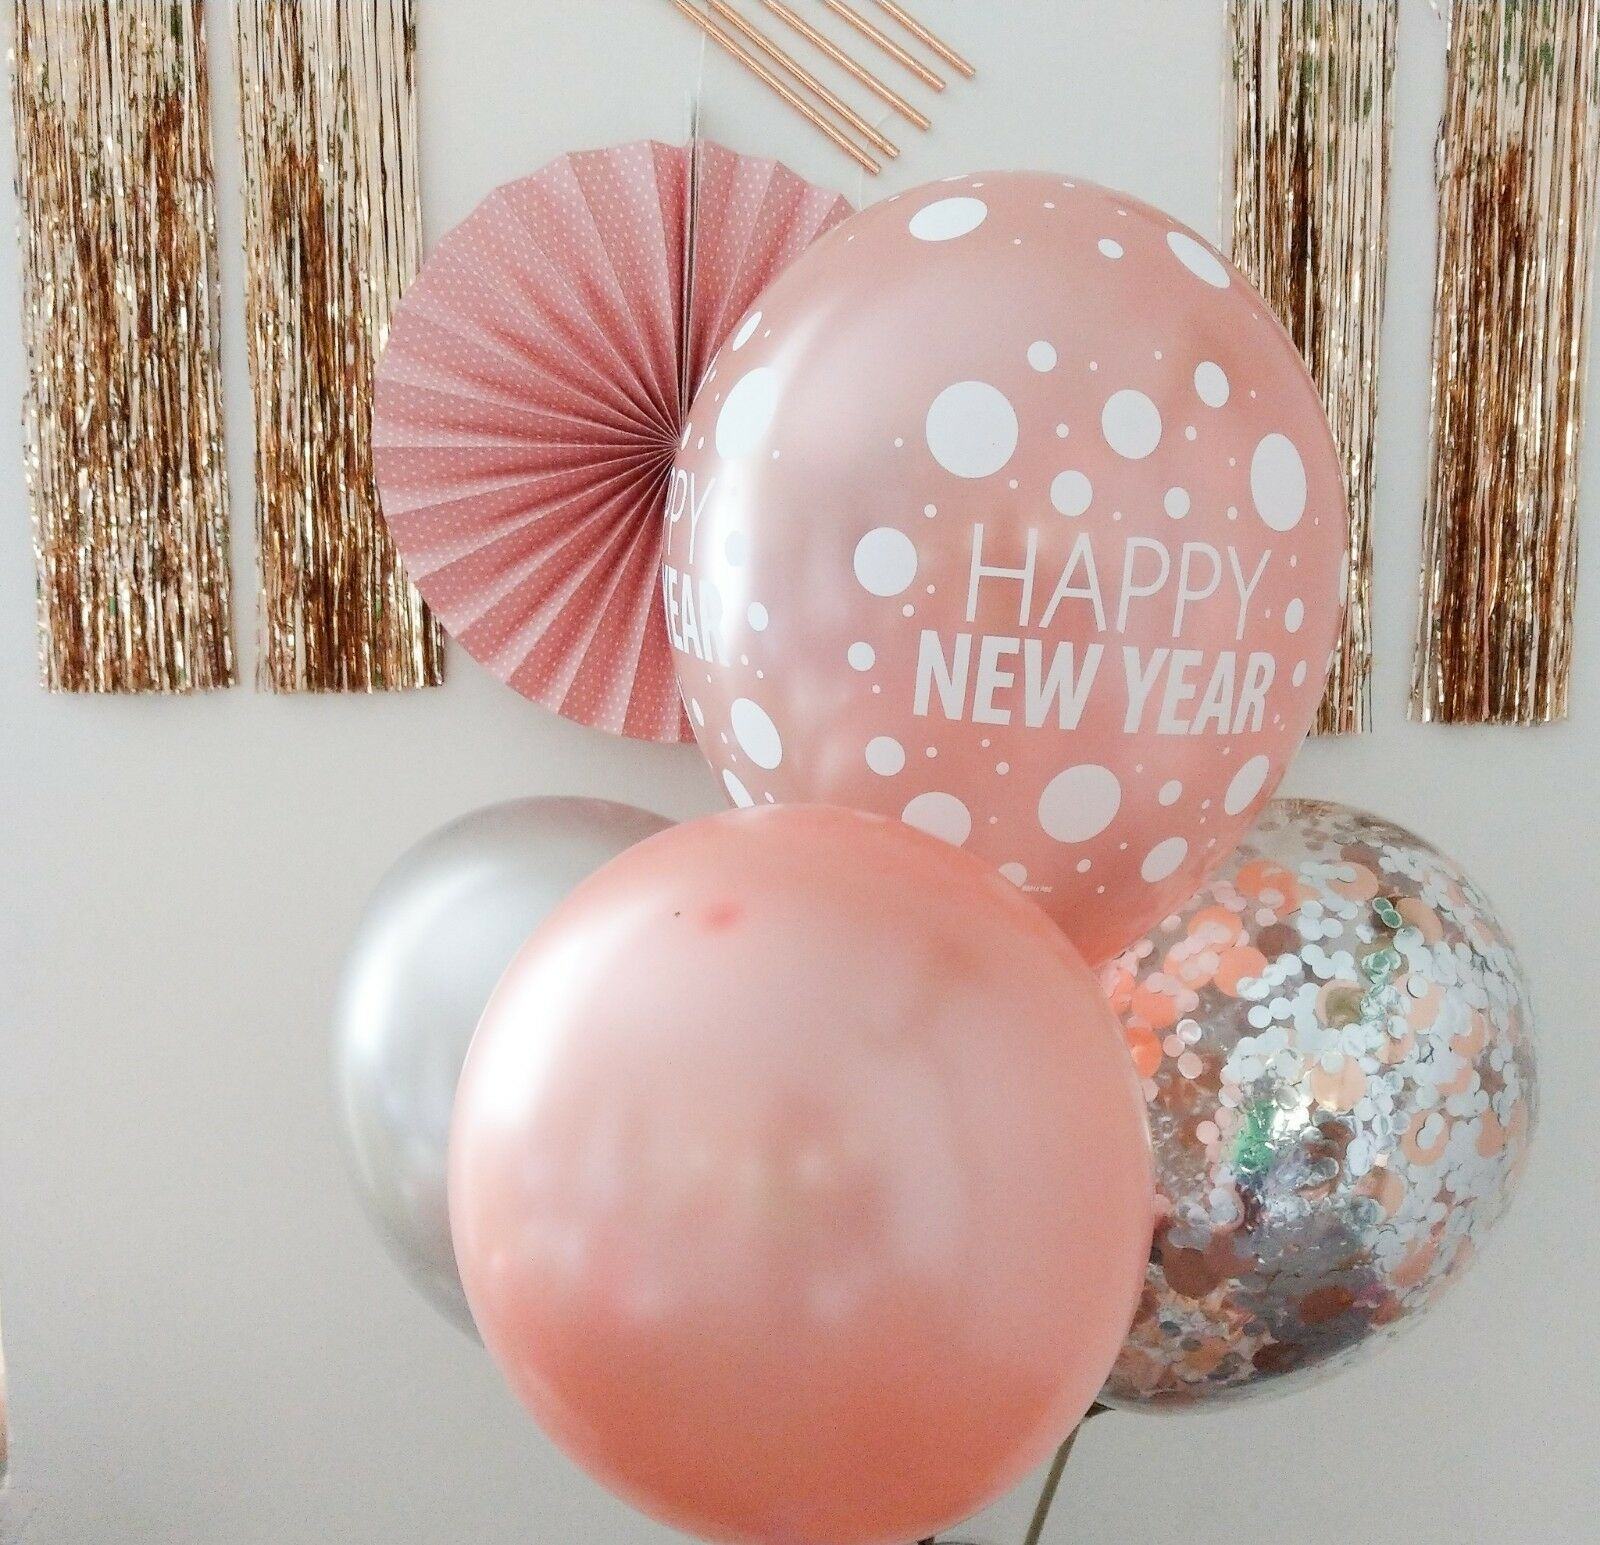 https://picclick.co.uk/Rose-Gold-Balloons-Bouquet-Happy-New-Year-Engaged-323499310831.html